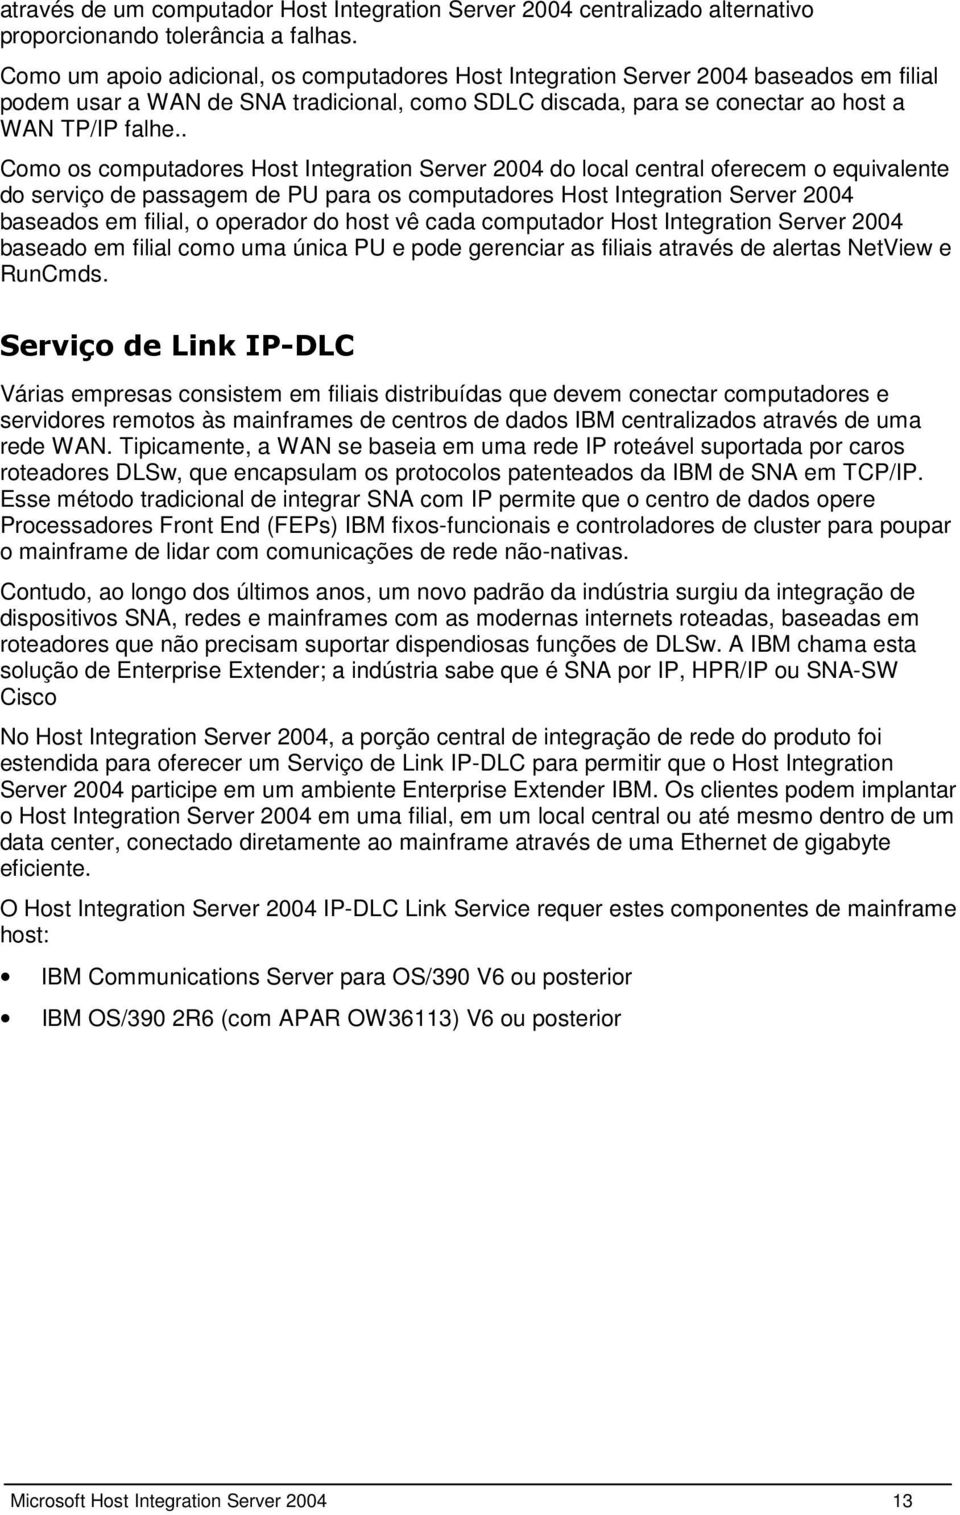 . Como os computadores Host Integration Server 2004 do local central oferecem o equivalente do serviço de passagem de PU para os computadores Host Integration Server 2004 baseados em filial, o